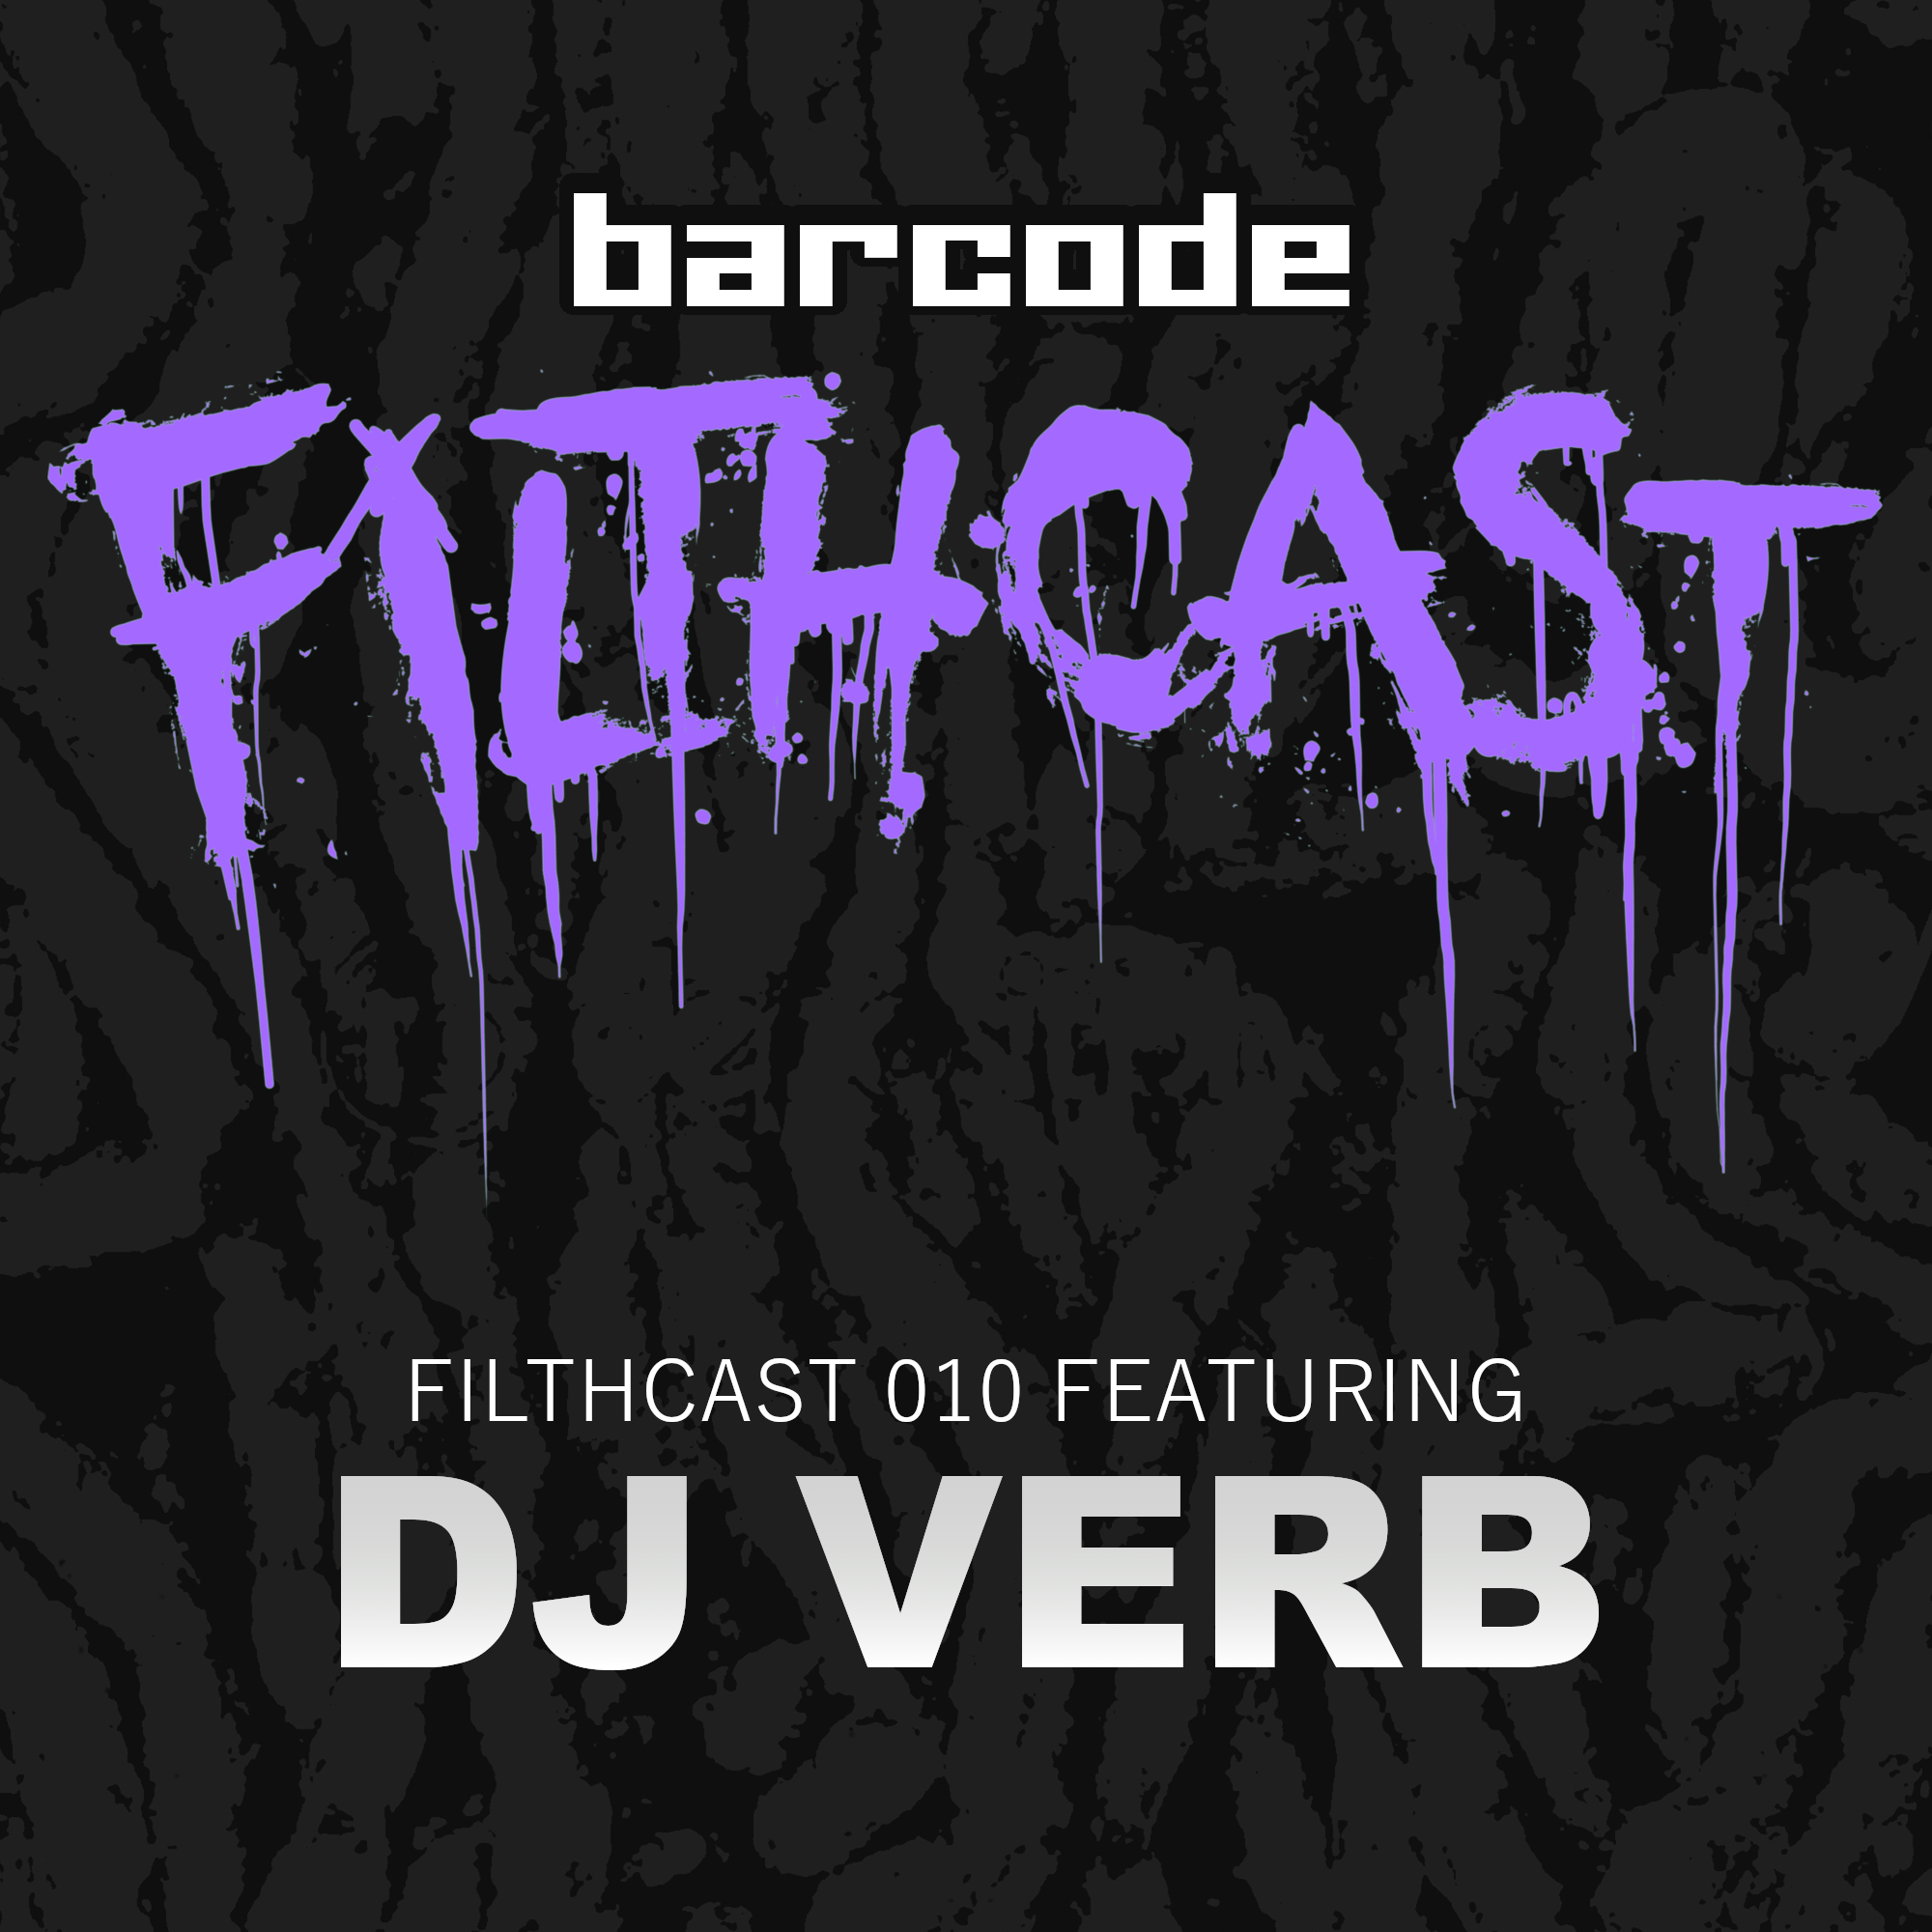 A prominent influence on the London pirate radio scene, Verb's extensive knowledge of drum n bass and jungle date as far back as 1992, with his appreciation for the amen break showcased in this mix. Shout outs by the trendy MC Stapleton.